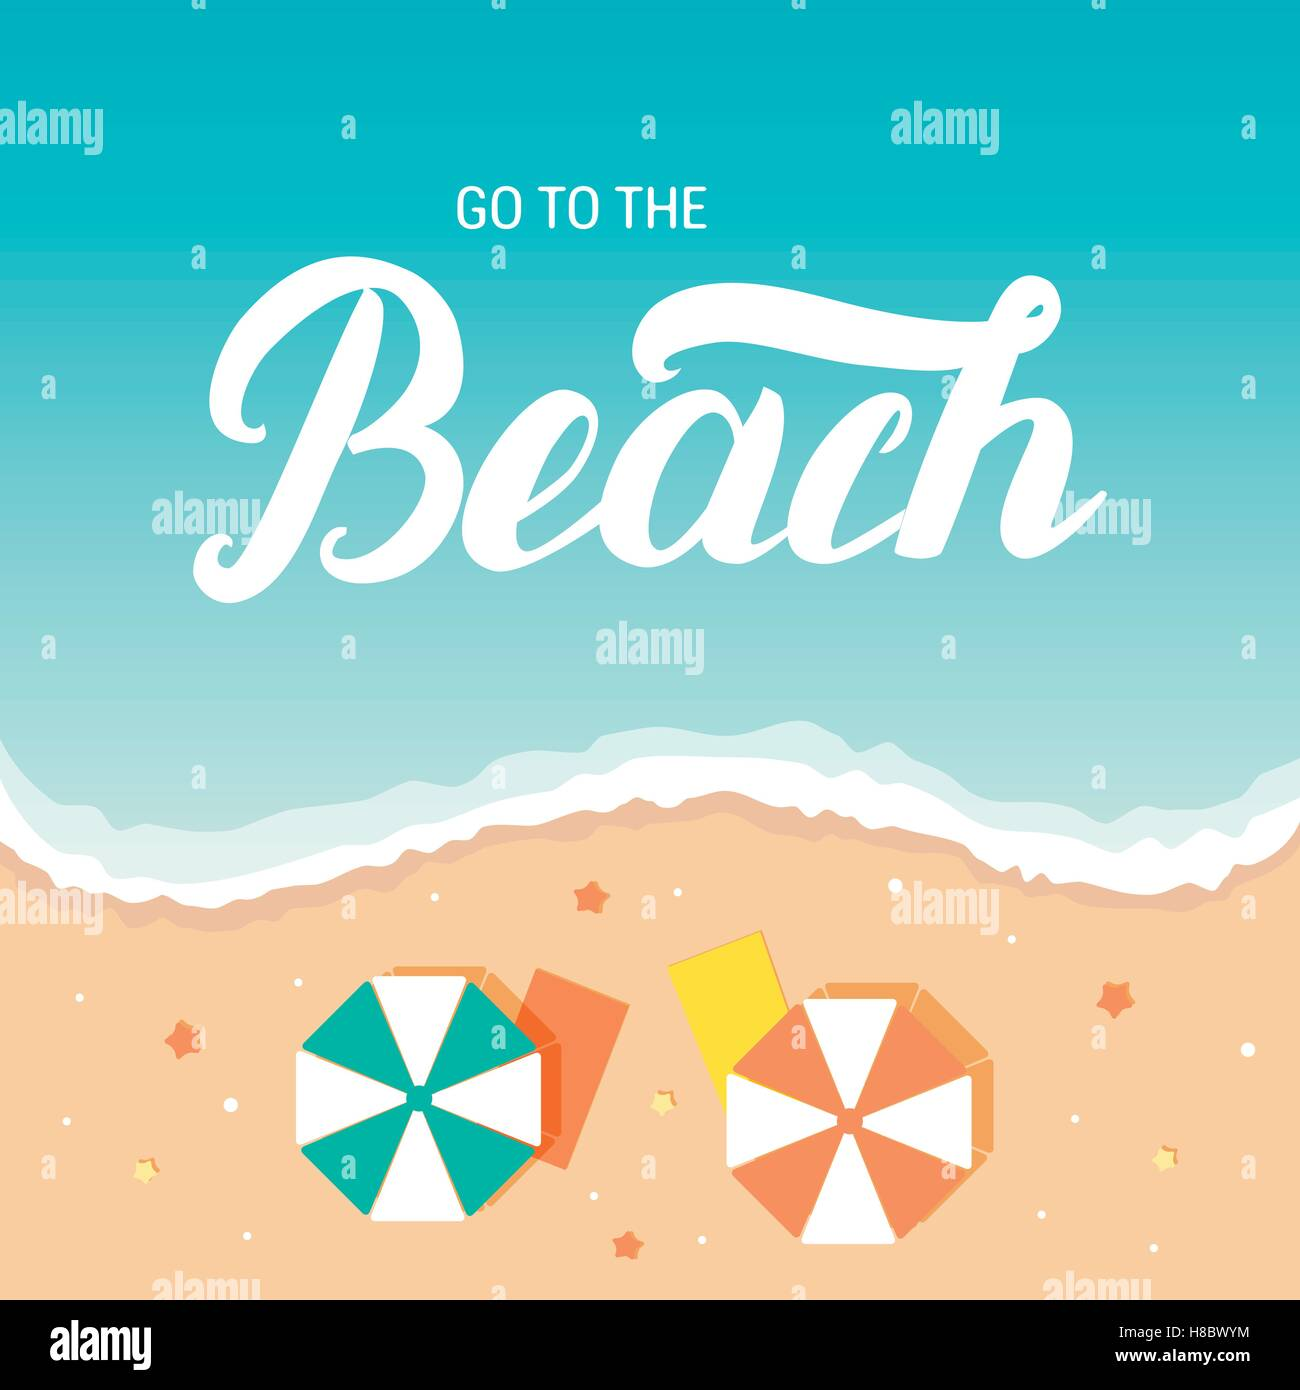 go to the beach hand lettering on sea and beach background with